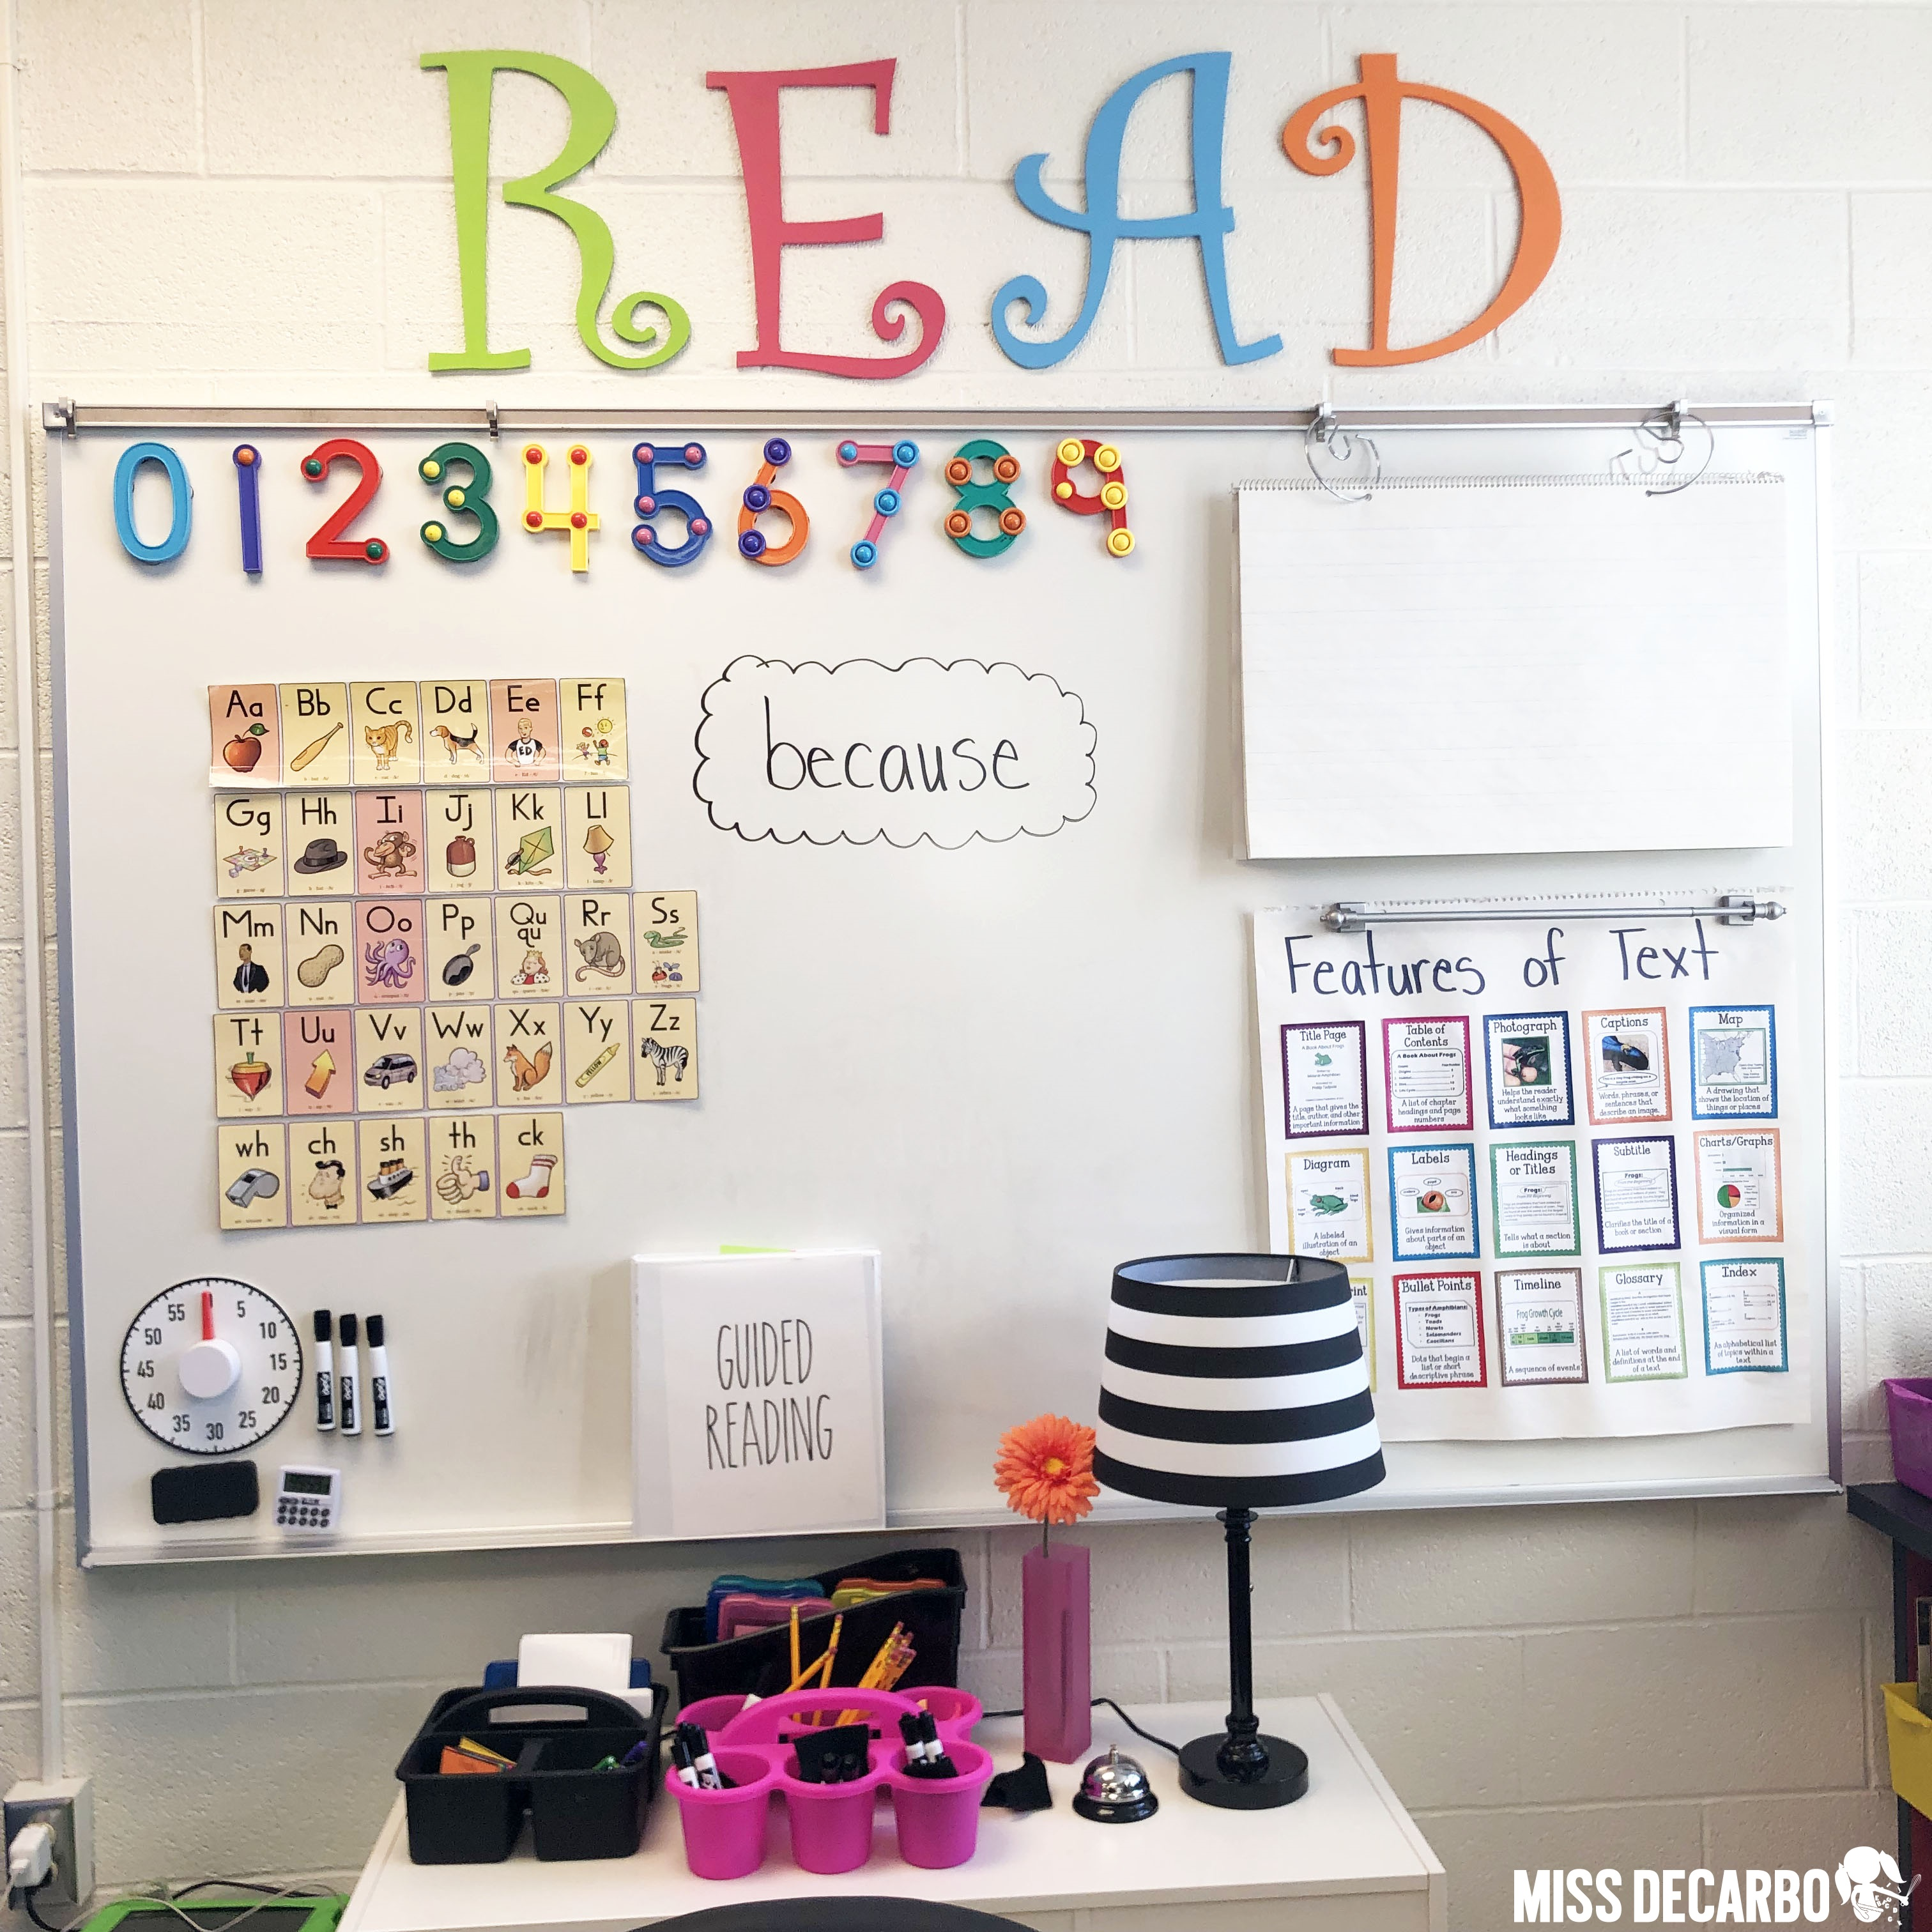 Learn 6 teacher hacks for classroom organization!